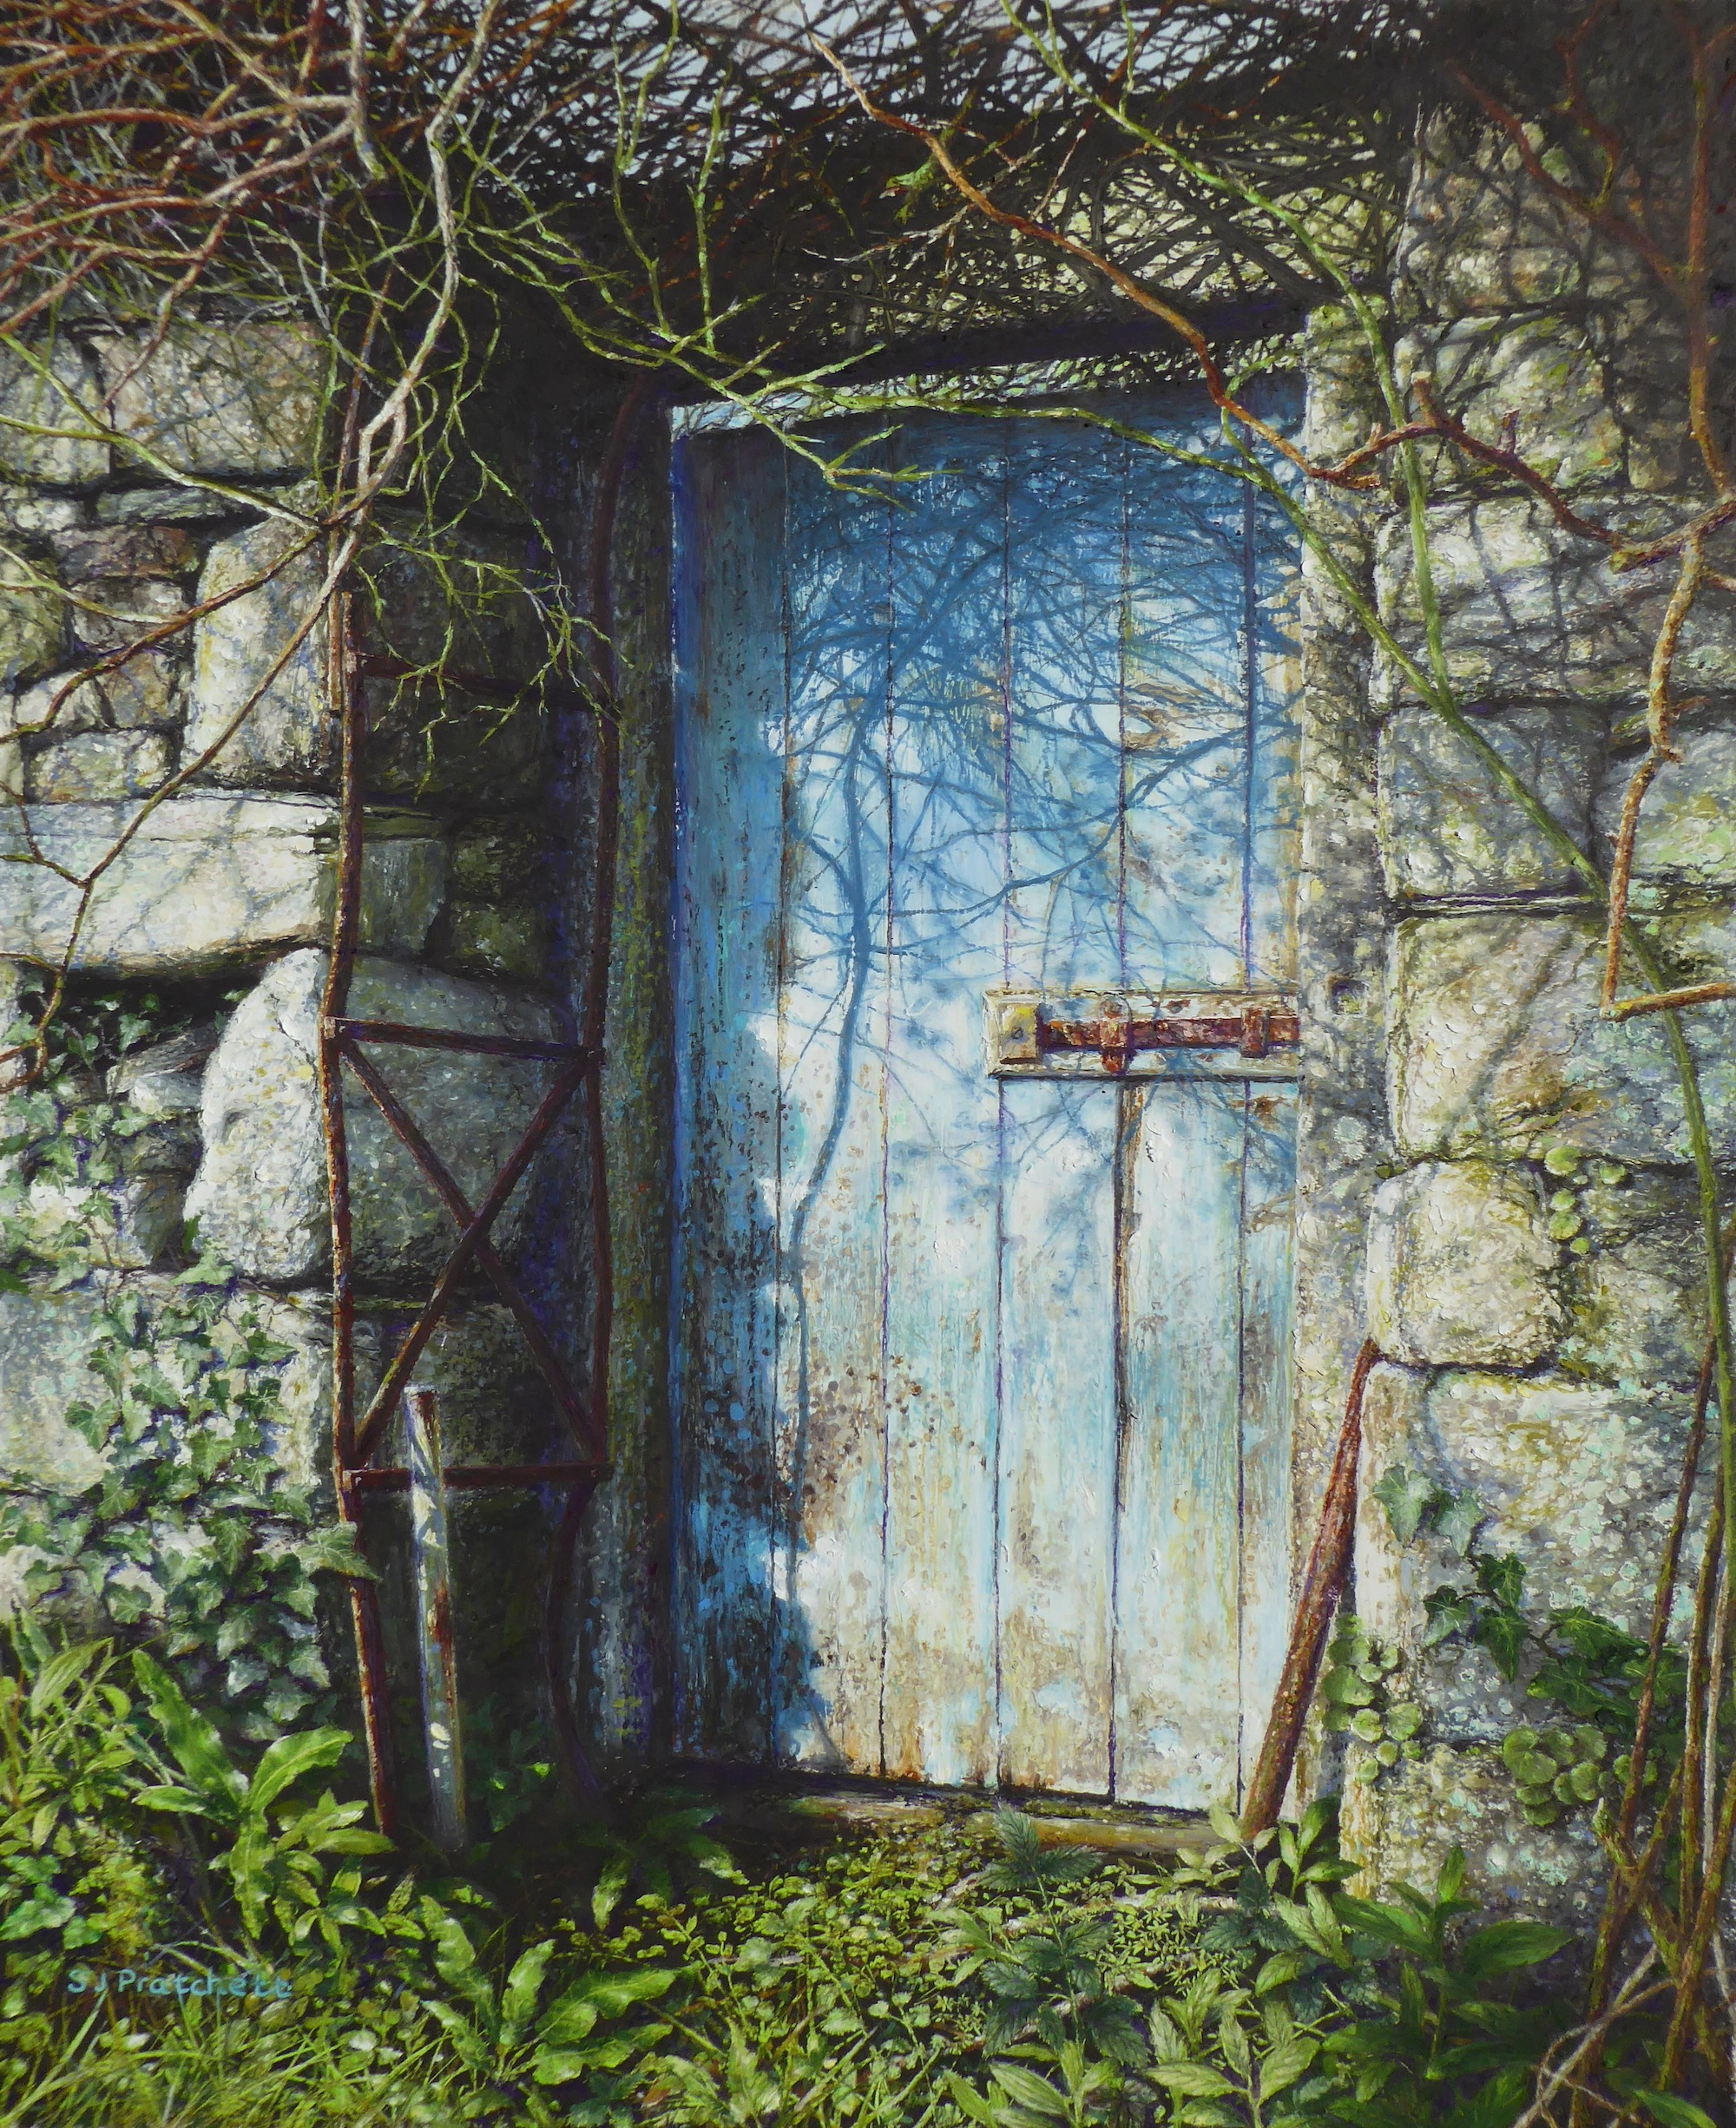 'Blue Gate to the Walled Garden'